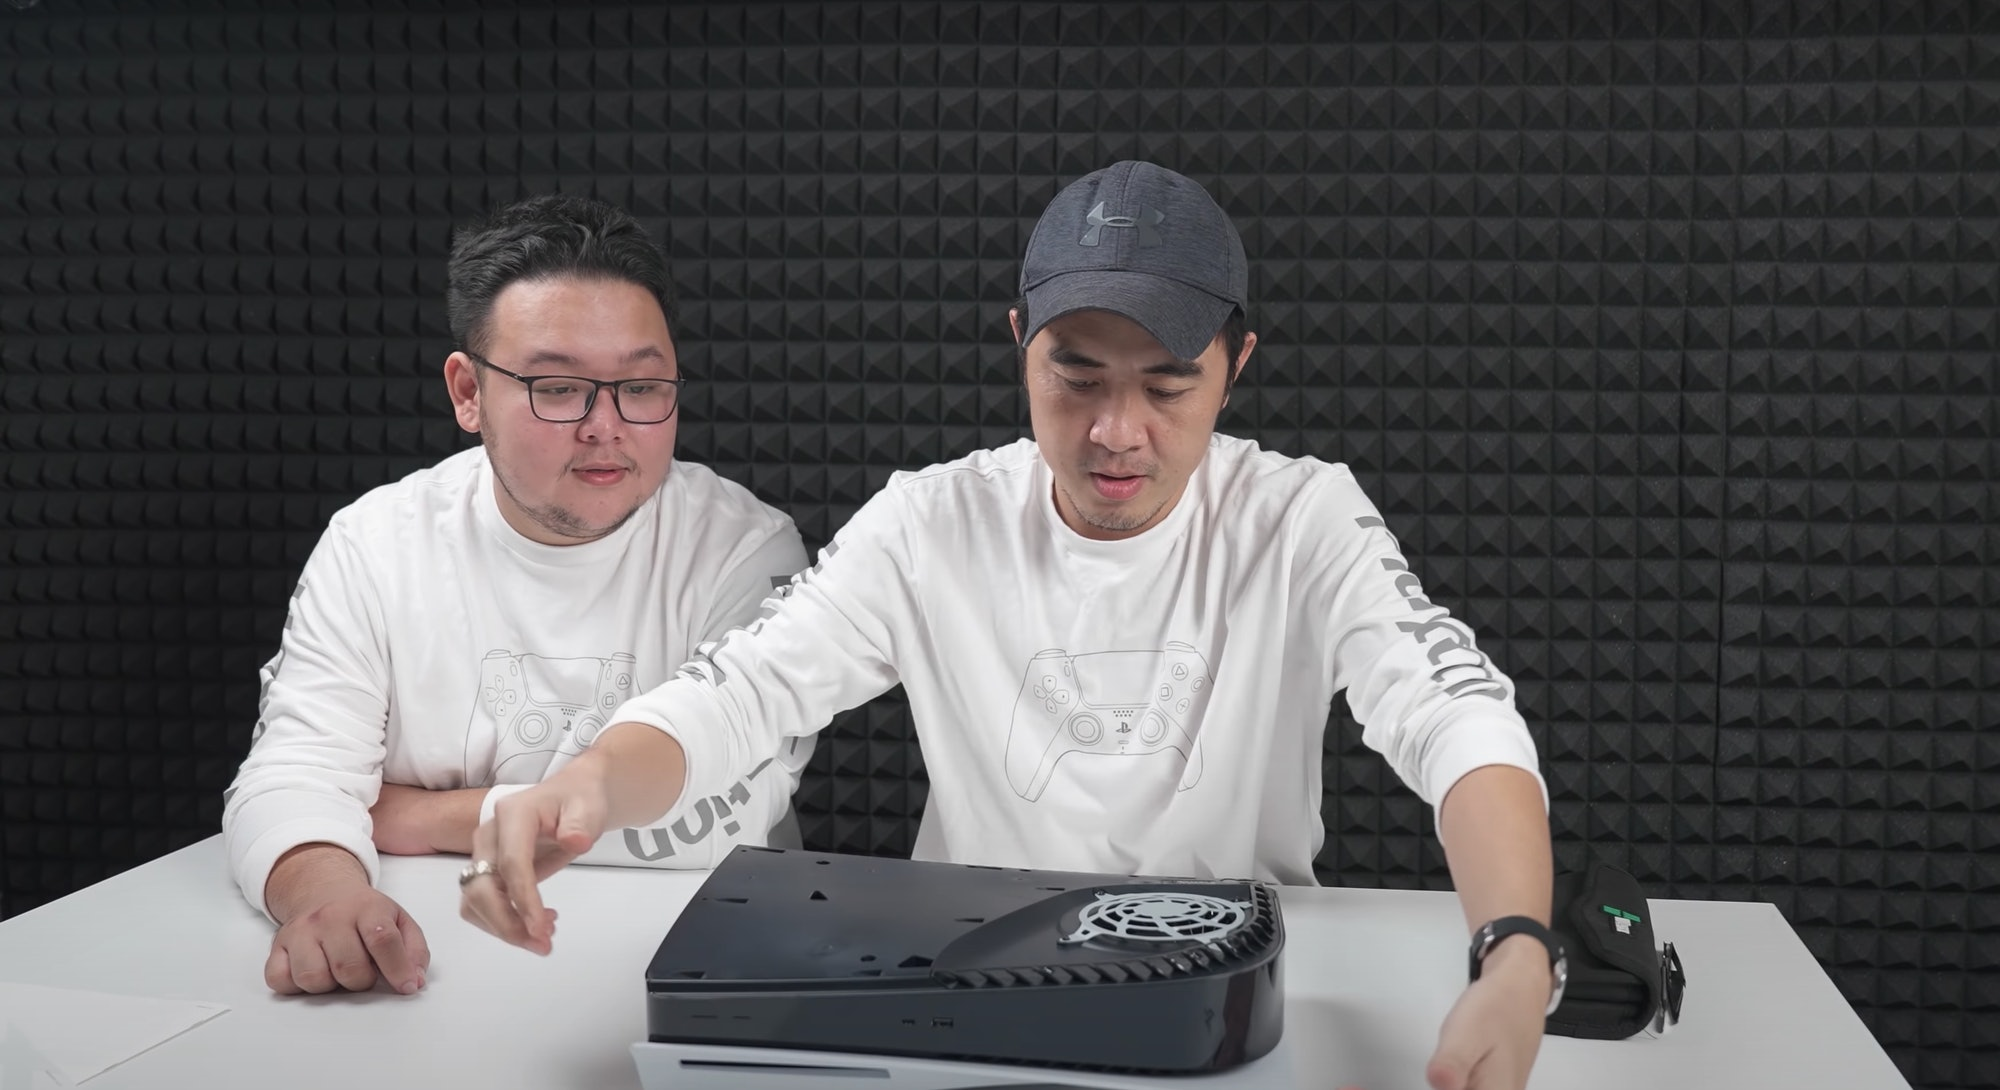 Two modders are seen disassembling a PS5.